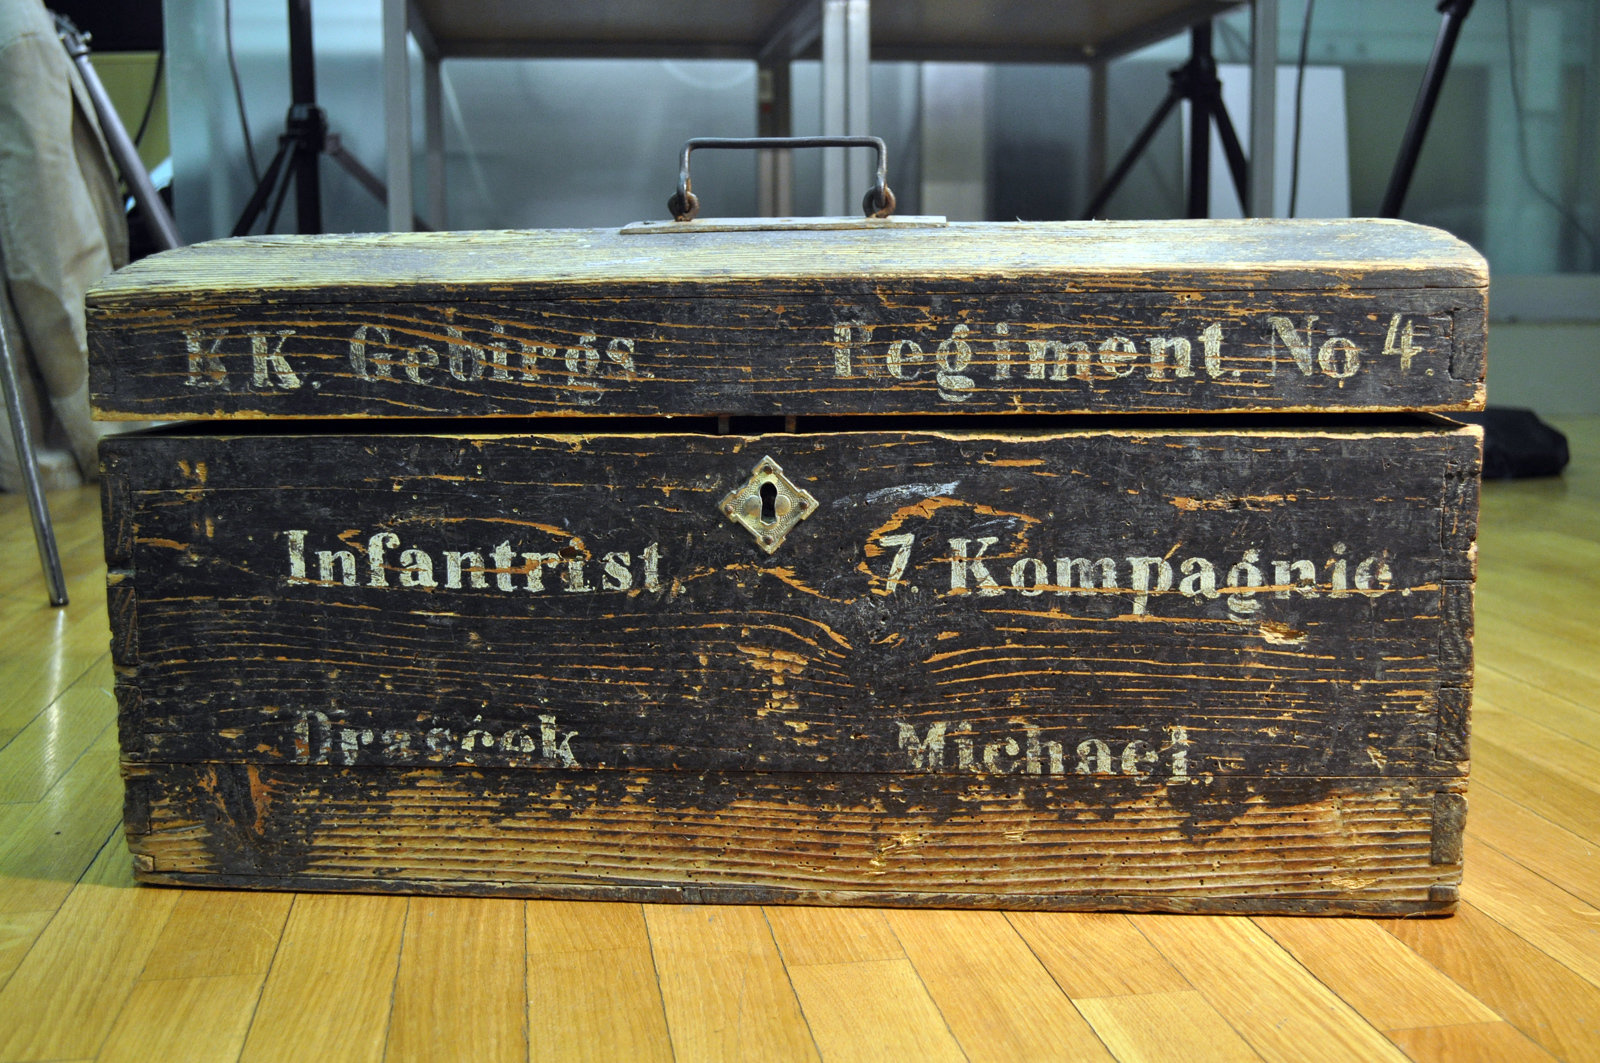 Wooden suitcase of Michael Drašček, undated, Europeana 1914-1918 / Rada Čopi, CC BY-SA